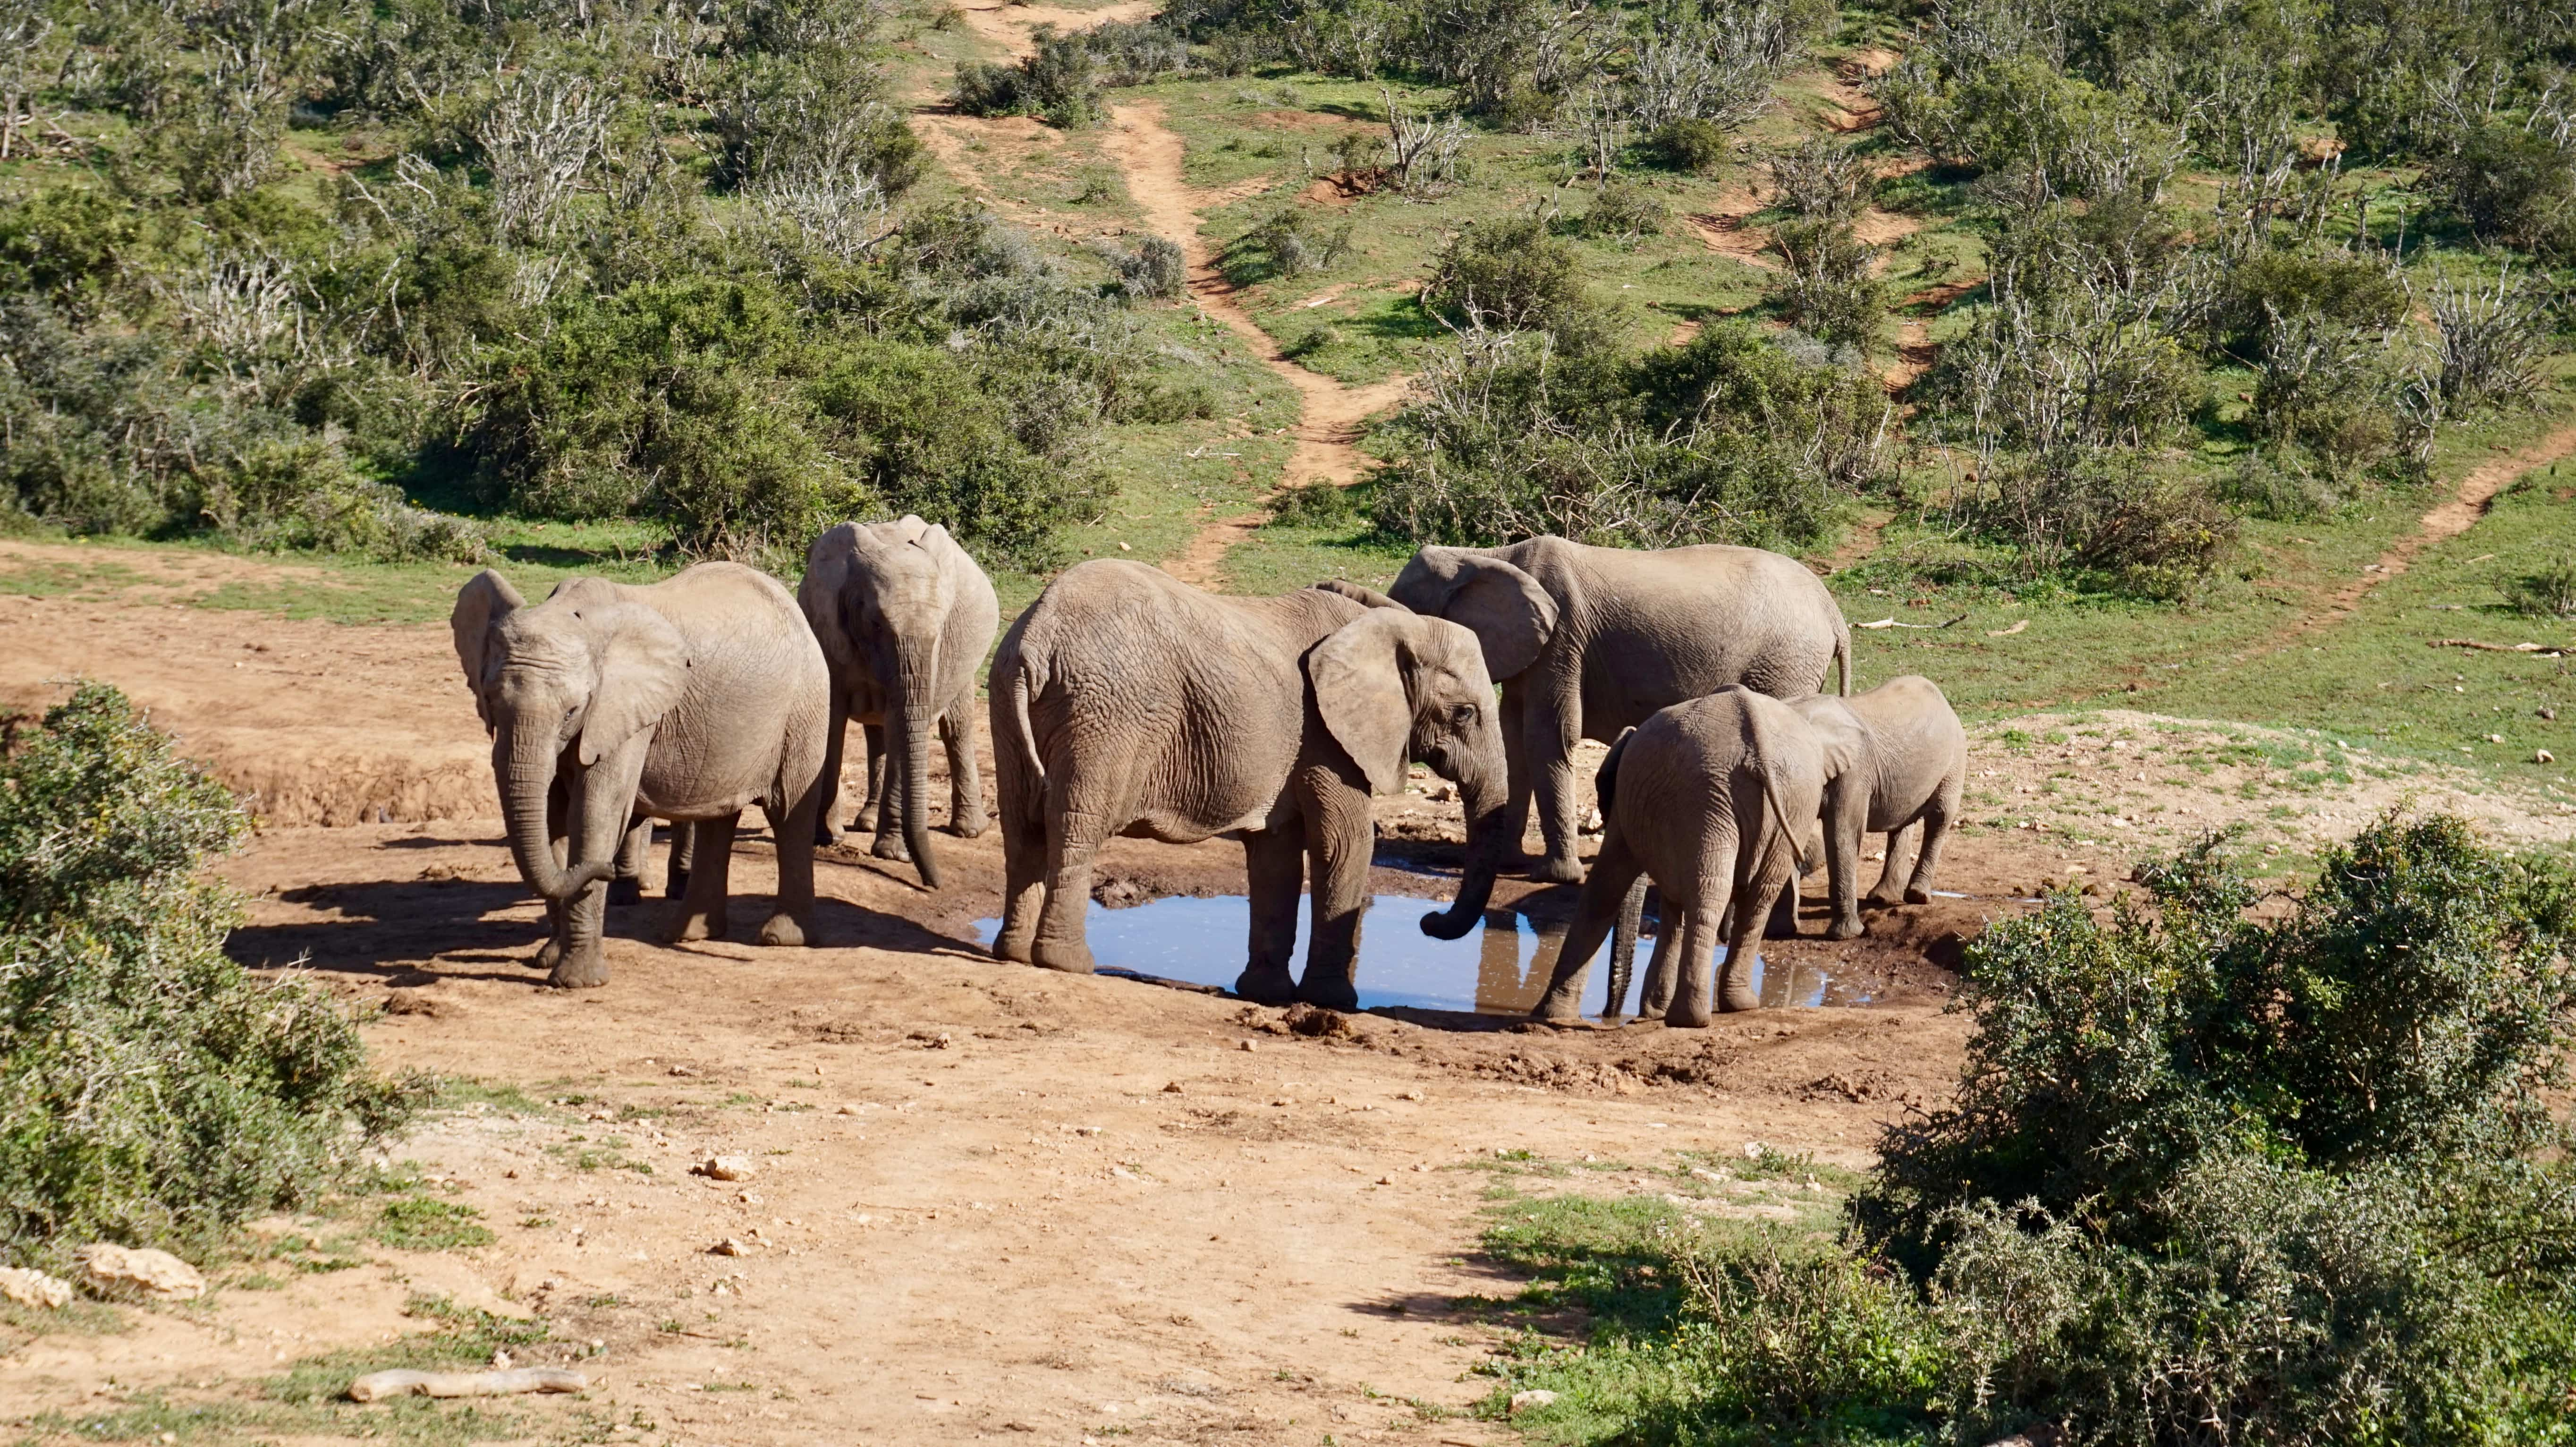 Elephants at the water hole in Addo Elephant National Park, South Africa